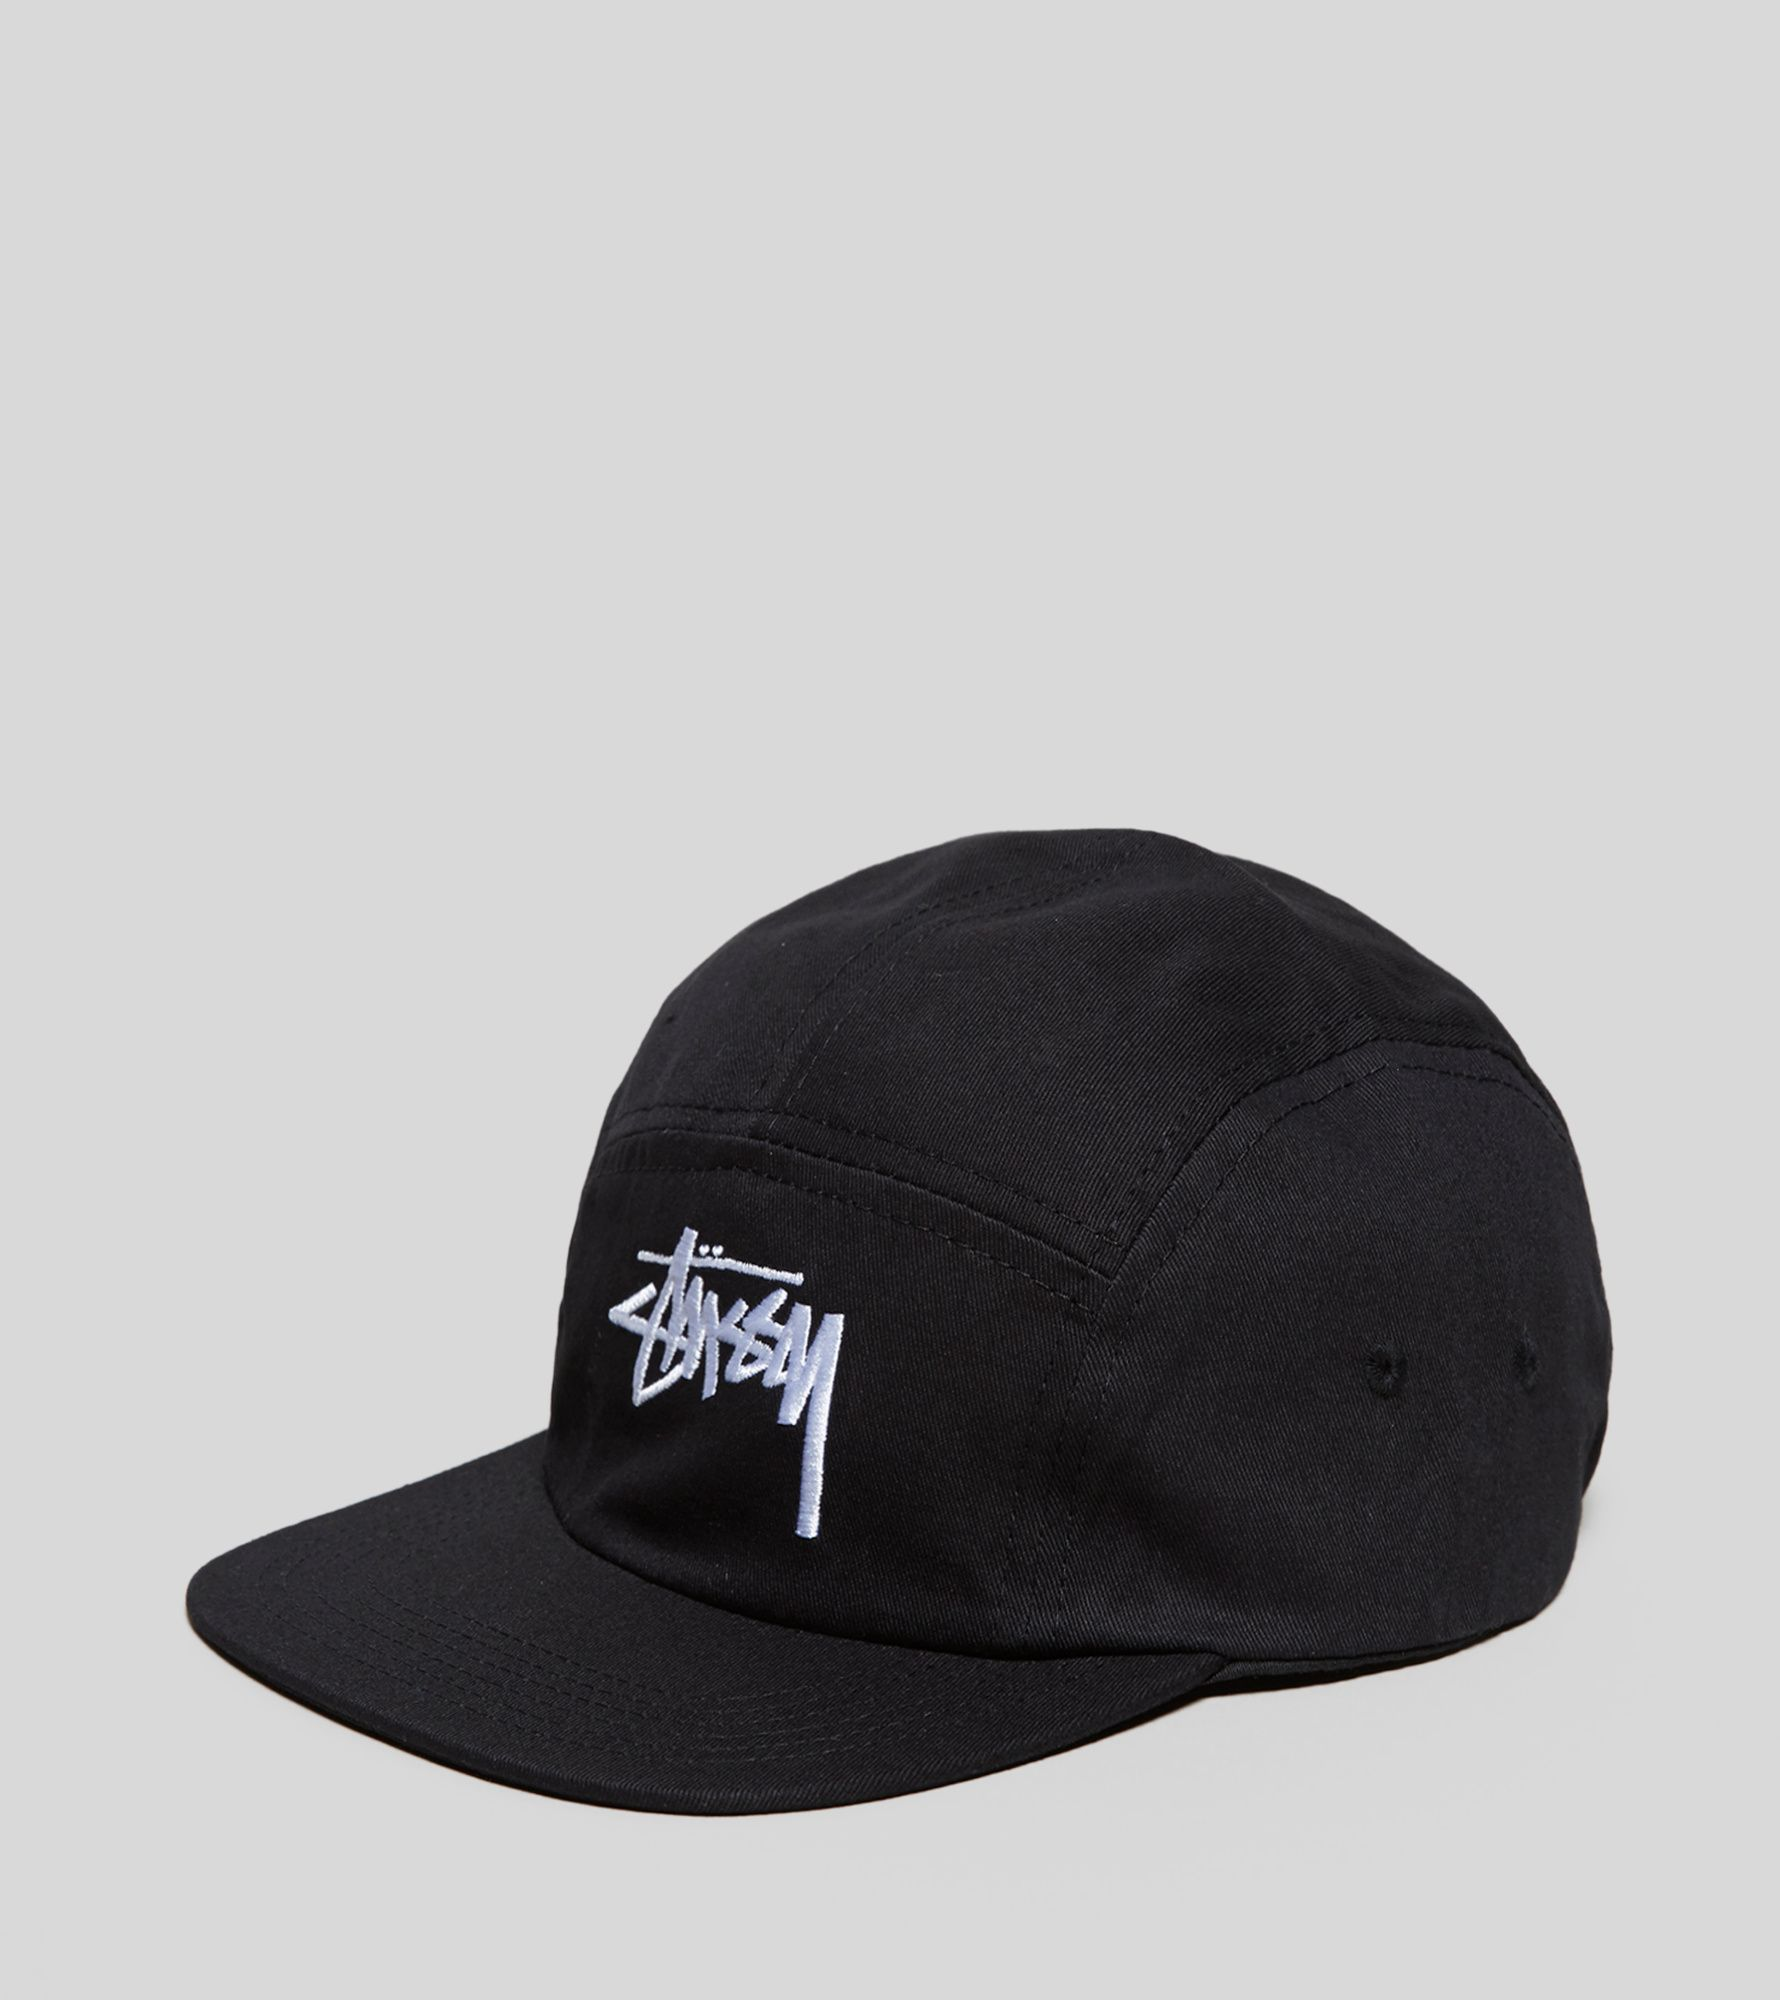 Stussy Stock Camp 5 Panel Cap  8f501aefd88